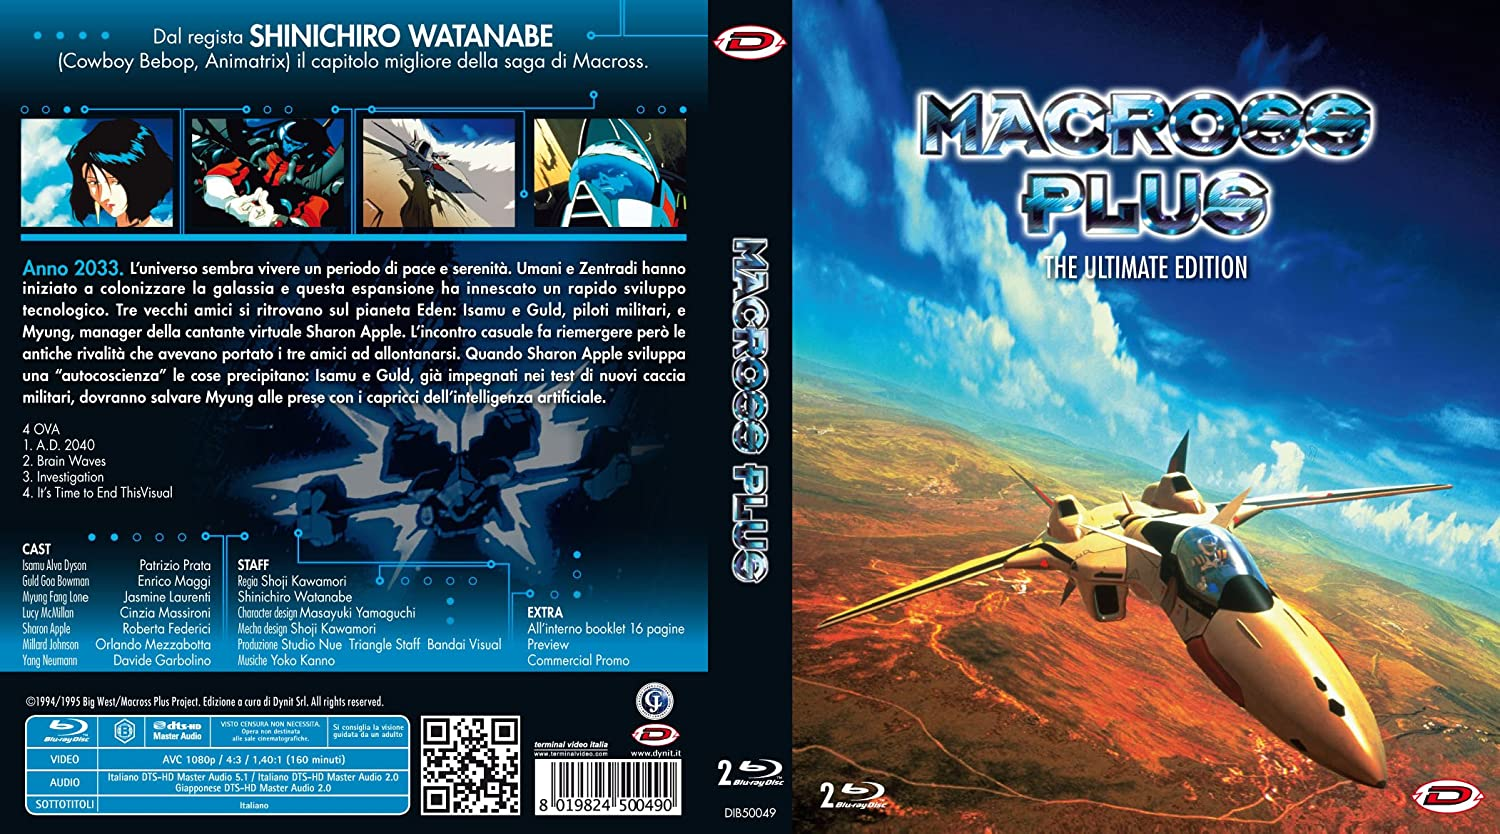 Macross Plus Dvd Amazon.com Macross Plus The